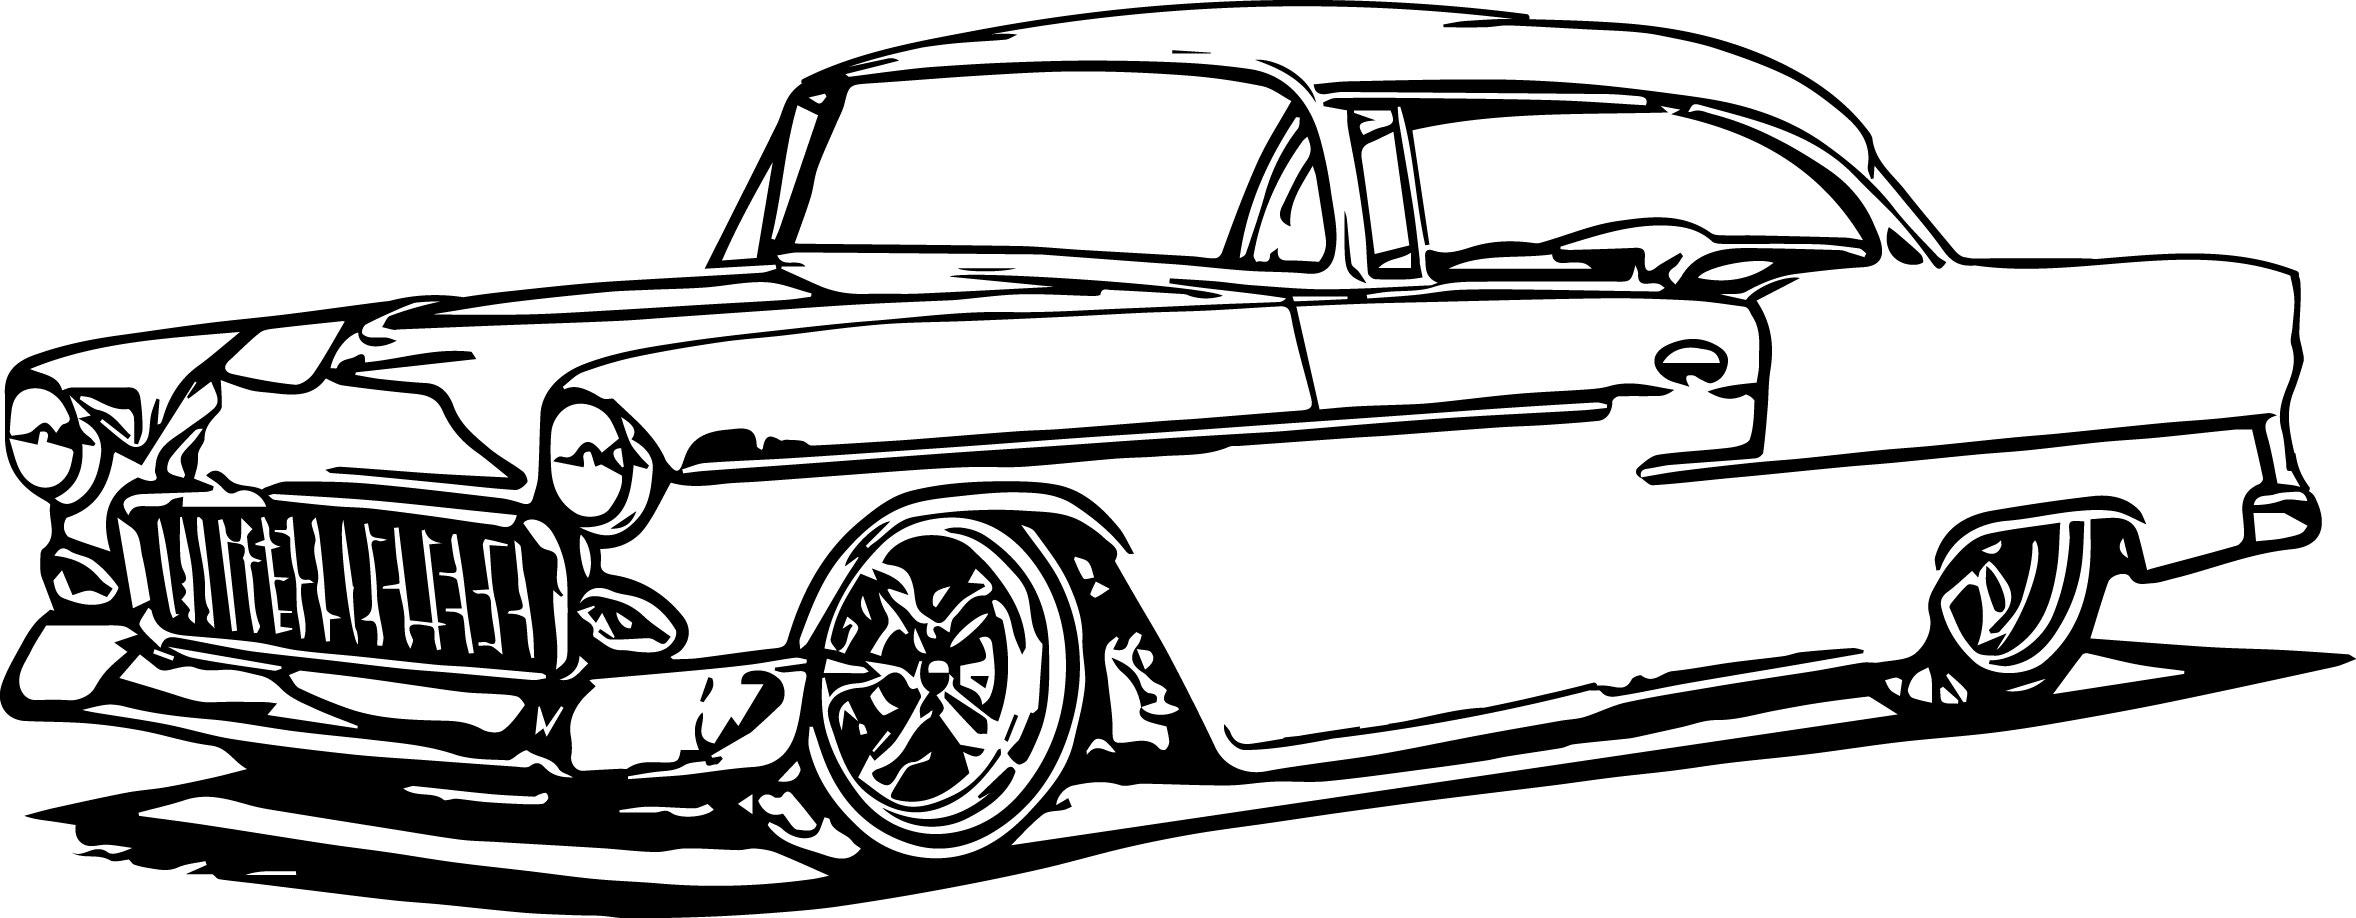 coloring pages antique cars | Antique Car Coloring Pages | Wecoloringpage.com